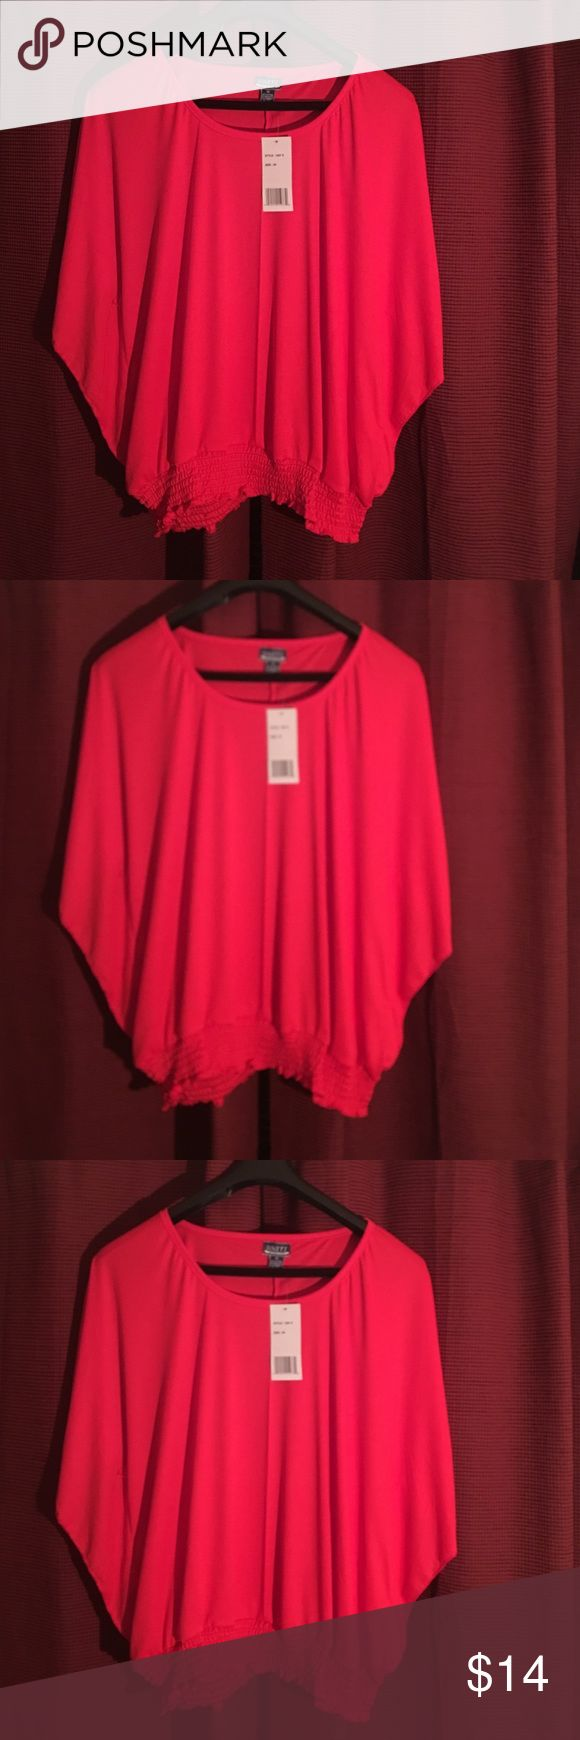 uniti soild red smock top woman's  This lady in red smock top is stunning on very light comfortable and nice red color great with shirts or summer legging 60 cotton 37 poly 37 spandex   3x woman Unti Tops